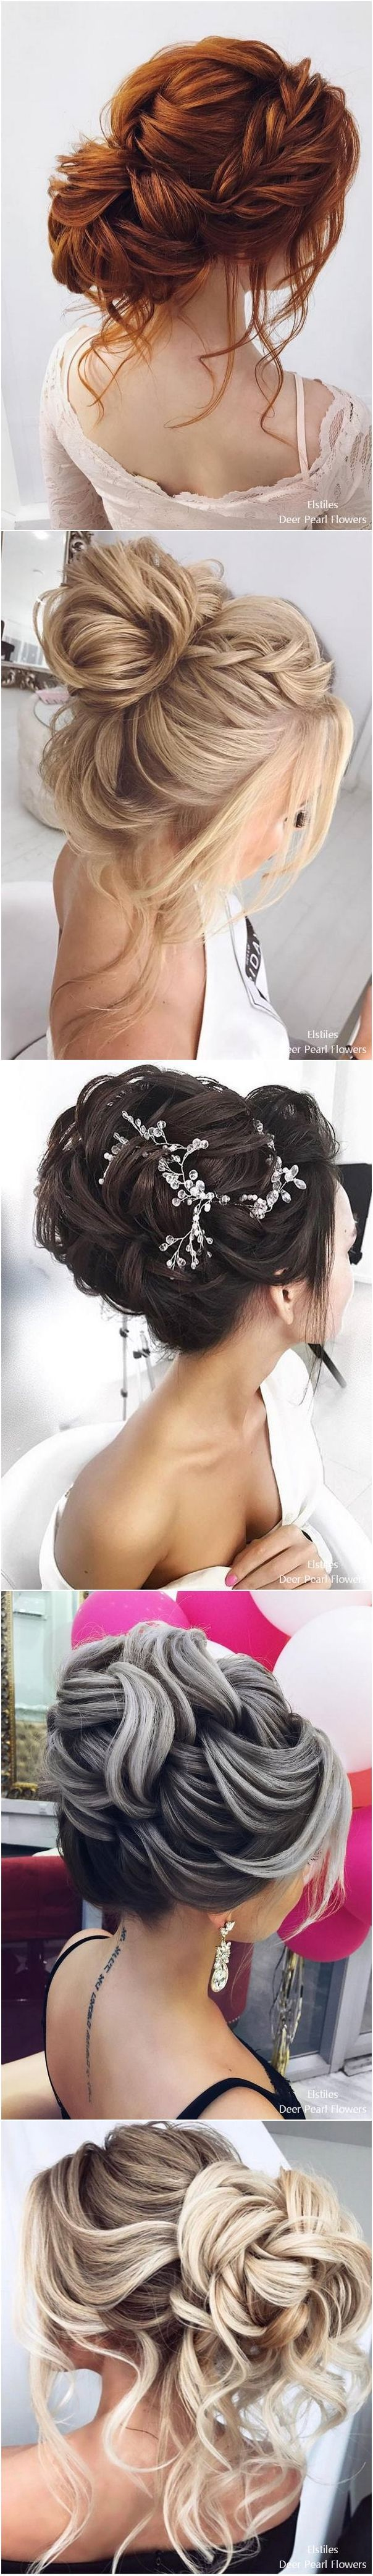 #BeautifulWeddingHairStyles